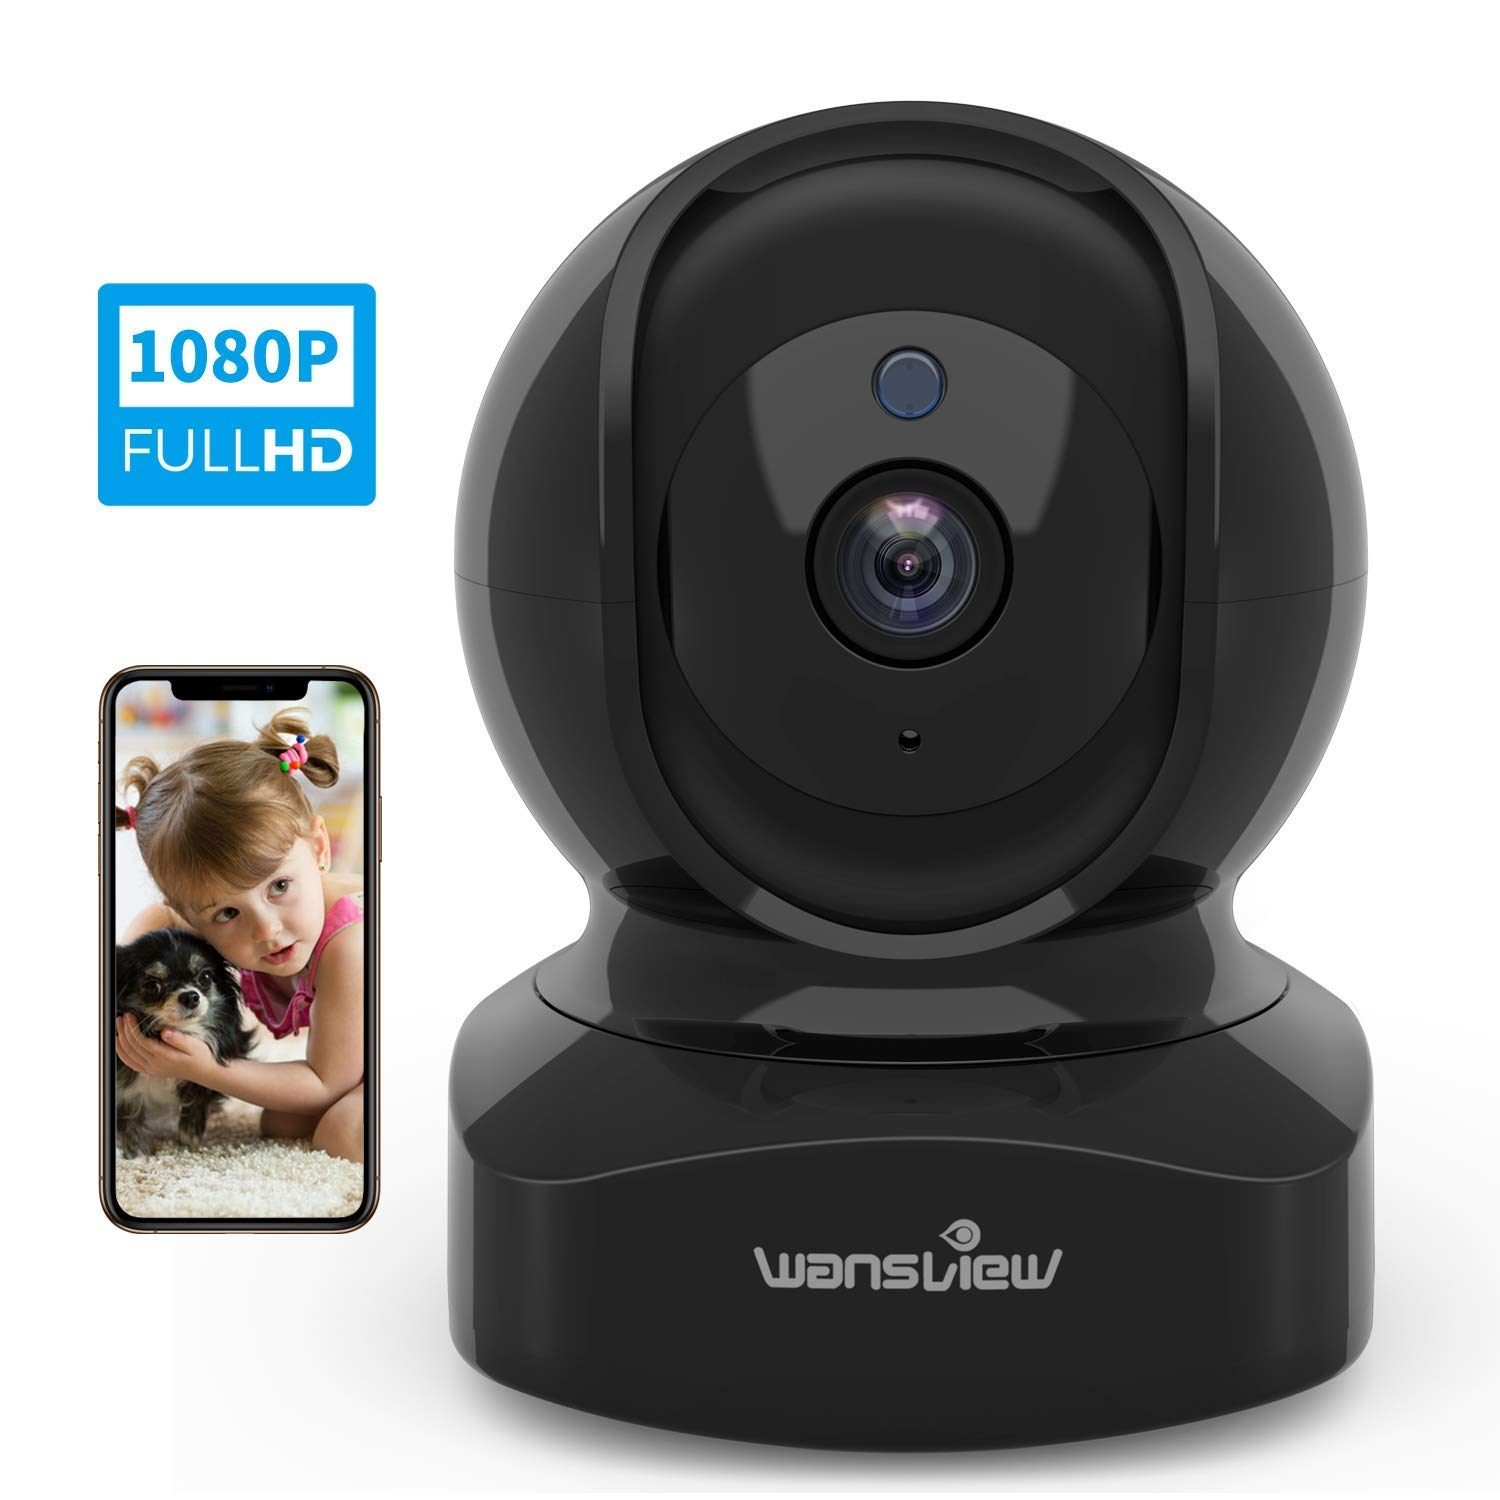 Wireless Security Camera, IP Camera 1080P HD Wansview, WiFi Home Indoor Camera for Baby/Pet/Nanny, Motion Detection, 2 Way Audio Night Vision, Works with Alexa, with TF Card Slot and Cloud by wansview